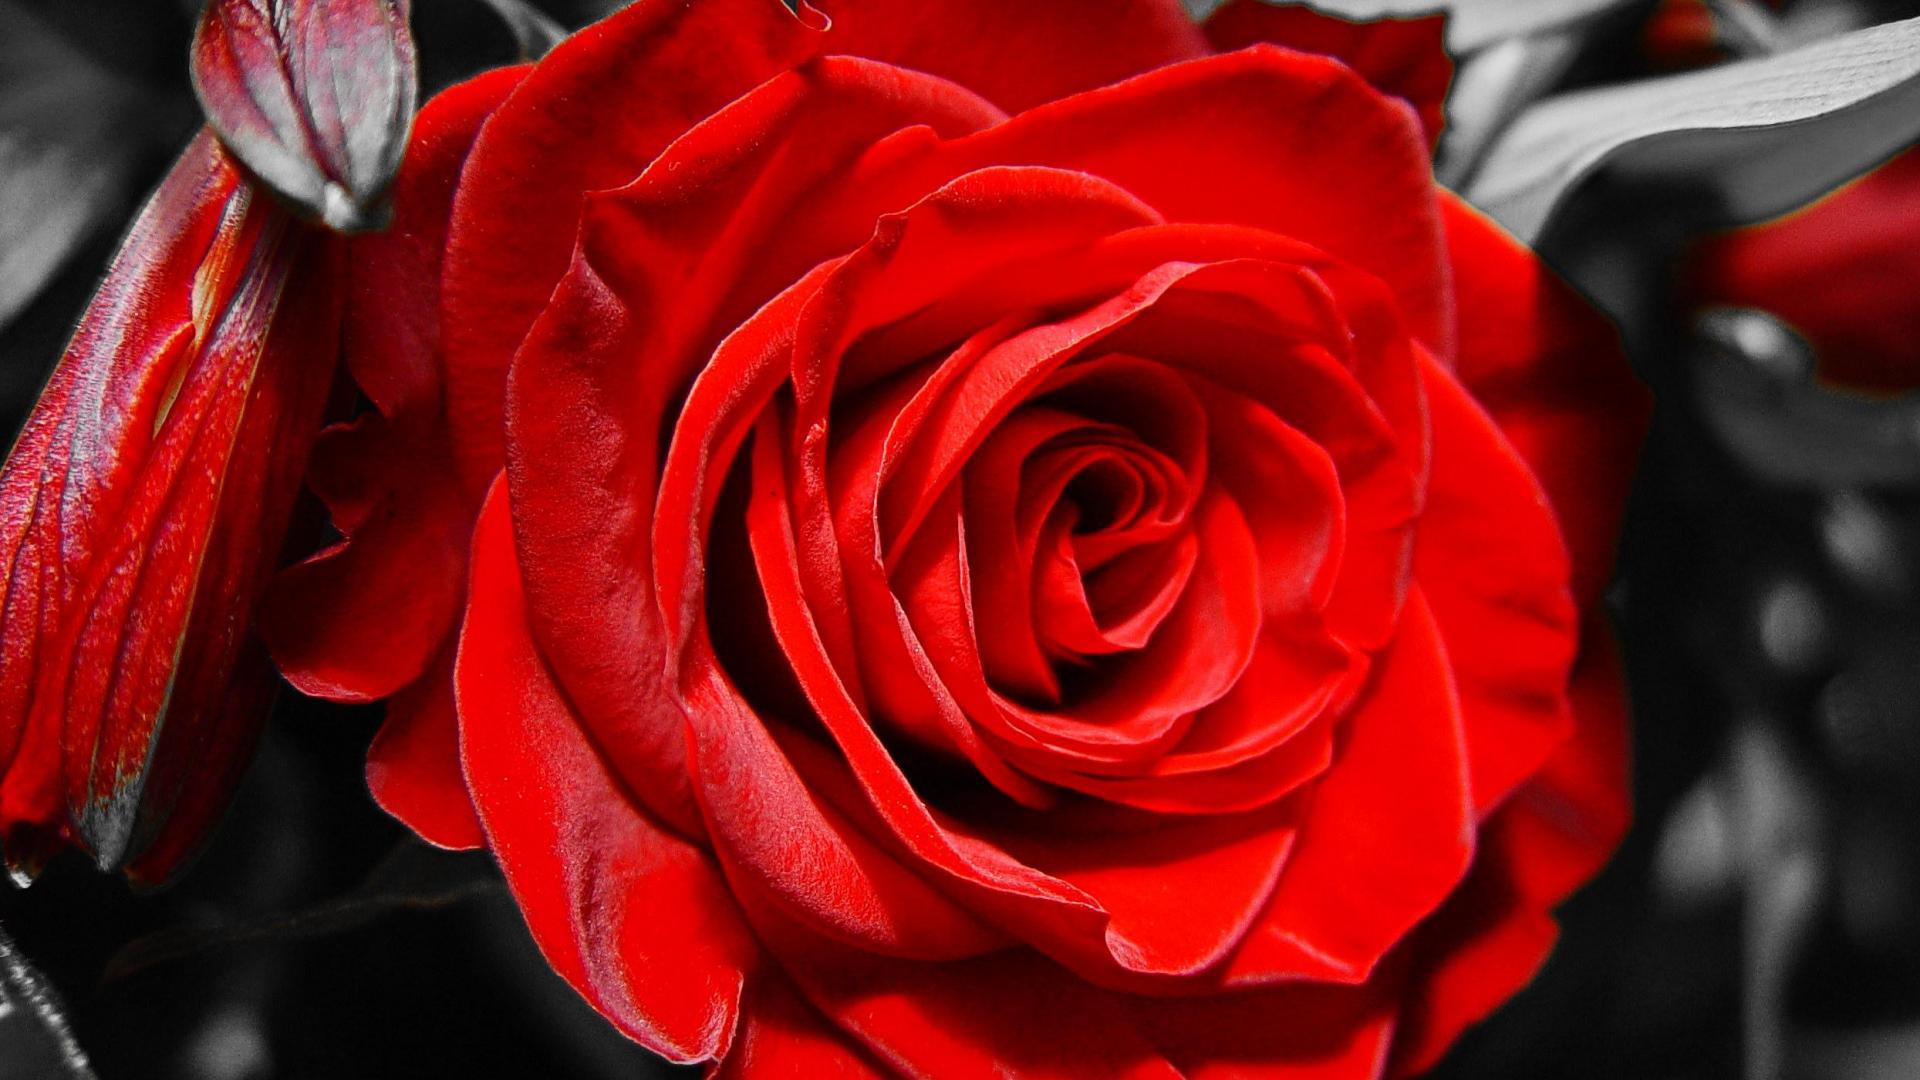 48 black and red rose wallpaper on wallpapersafari - Black and red rose wallpaper ...